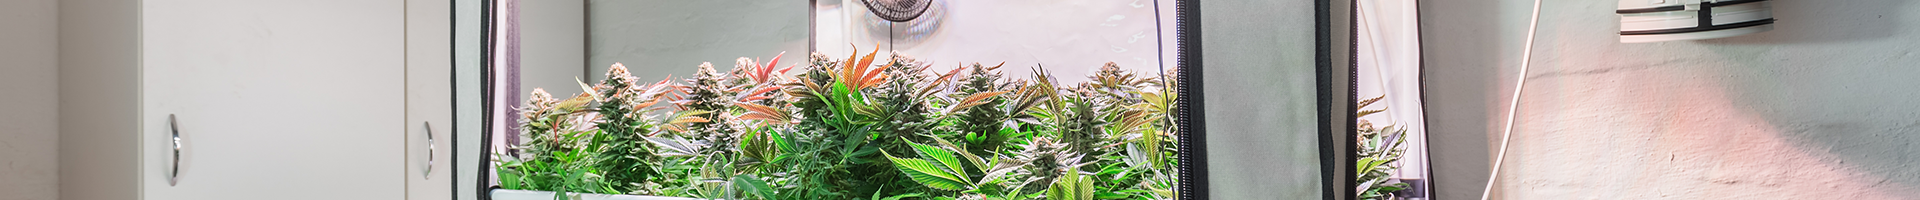 carbon-dioxide-generators-for-cannabis-growers